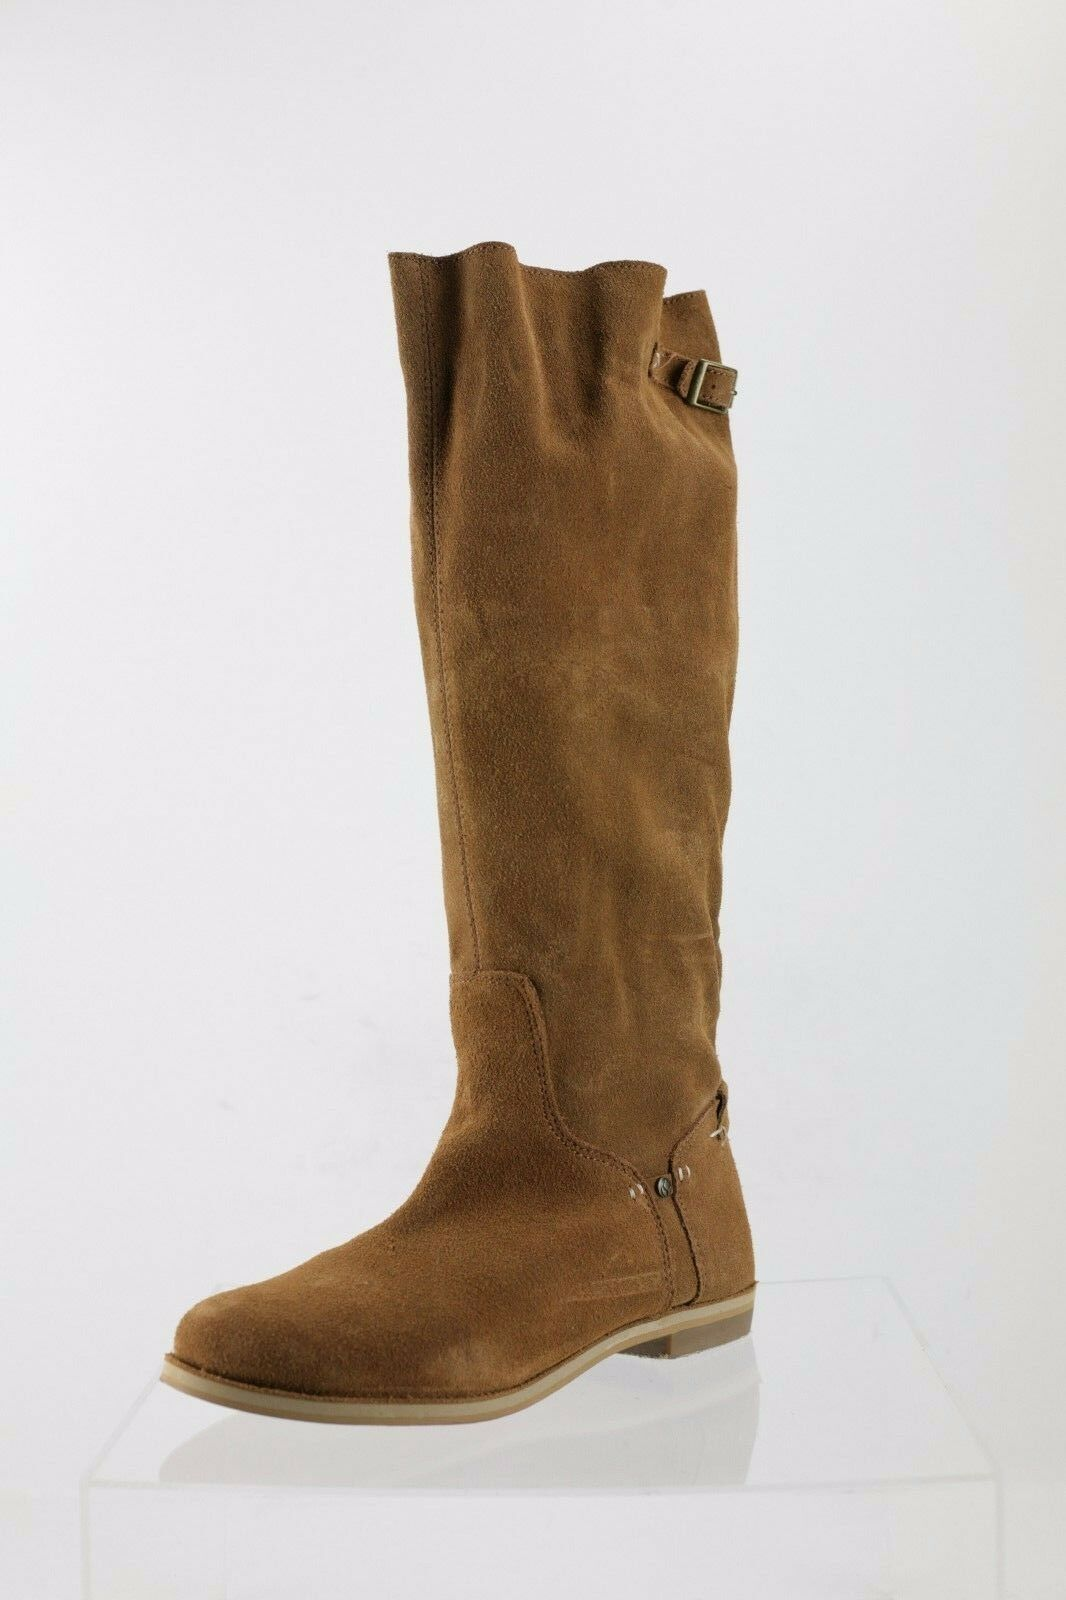 Reef High Desert Brown Suede Knee High Boots Women's shoes Size 9 M NEW